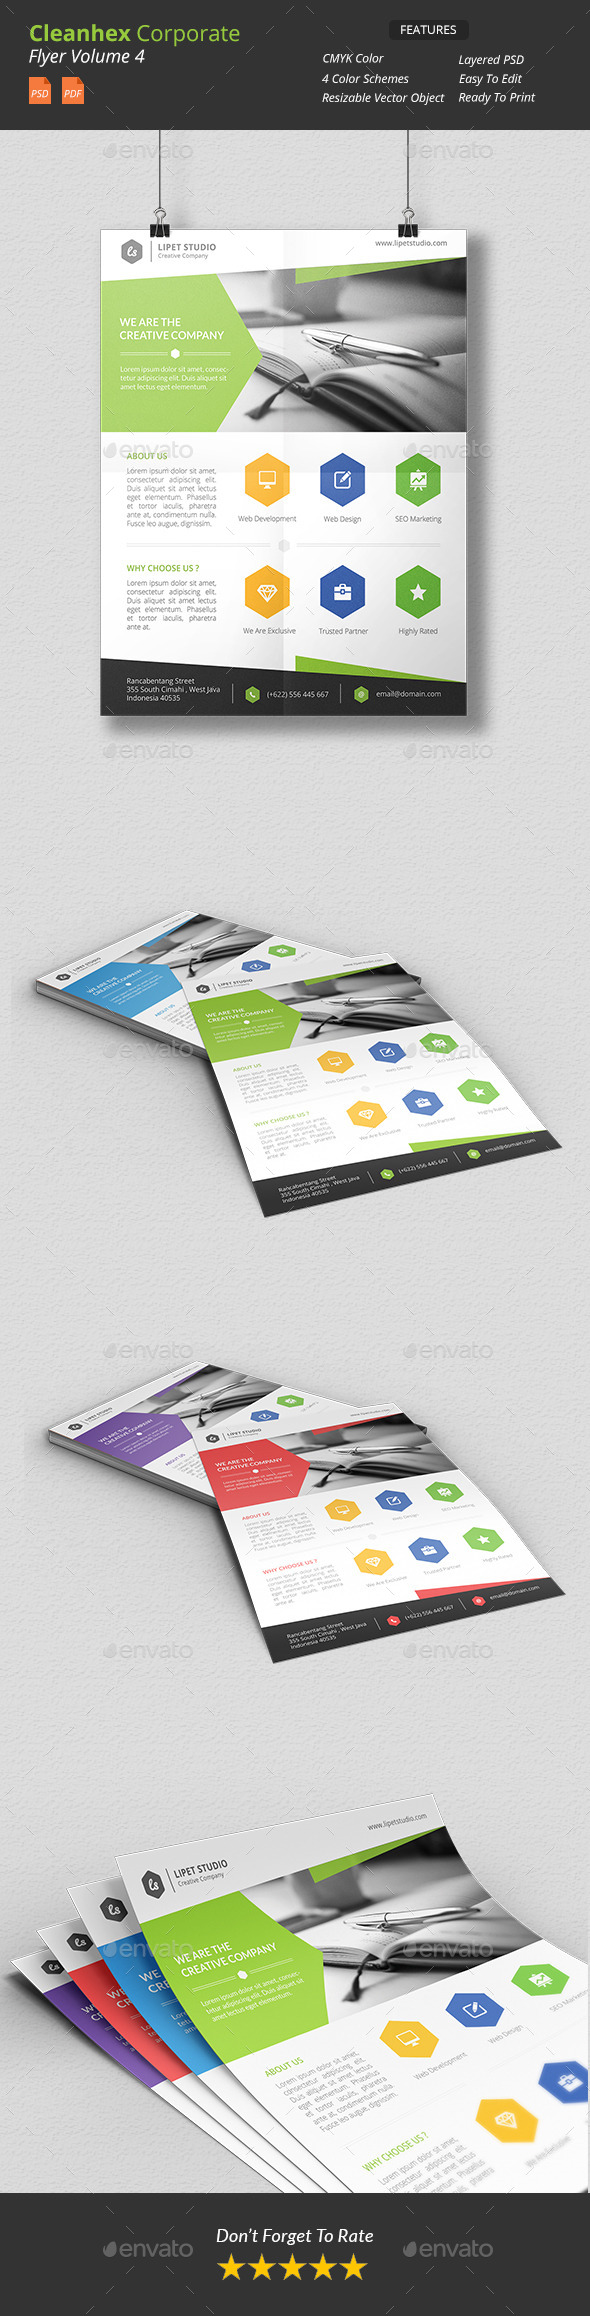 Cleanhex - Clean Corporate Flyer v4 - Corporate Flyers